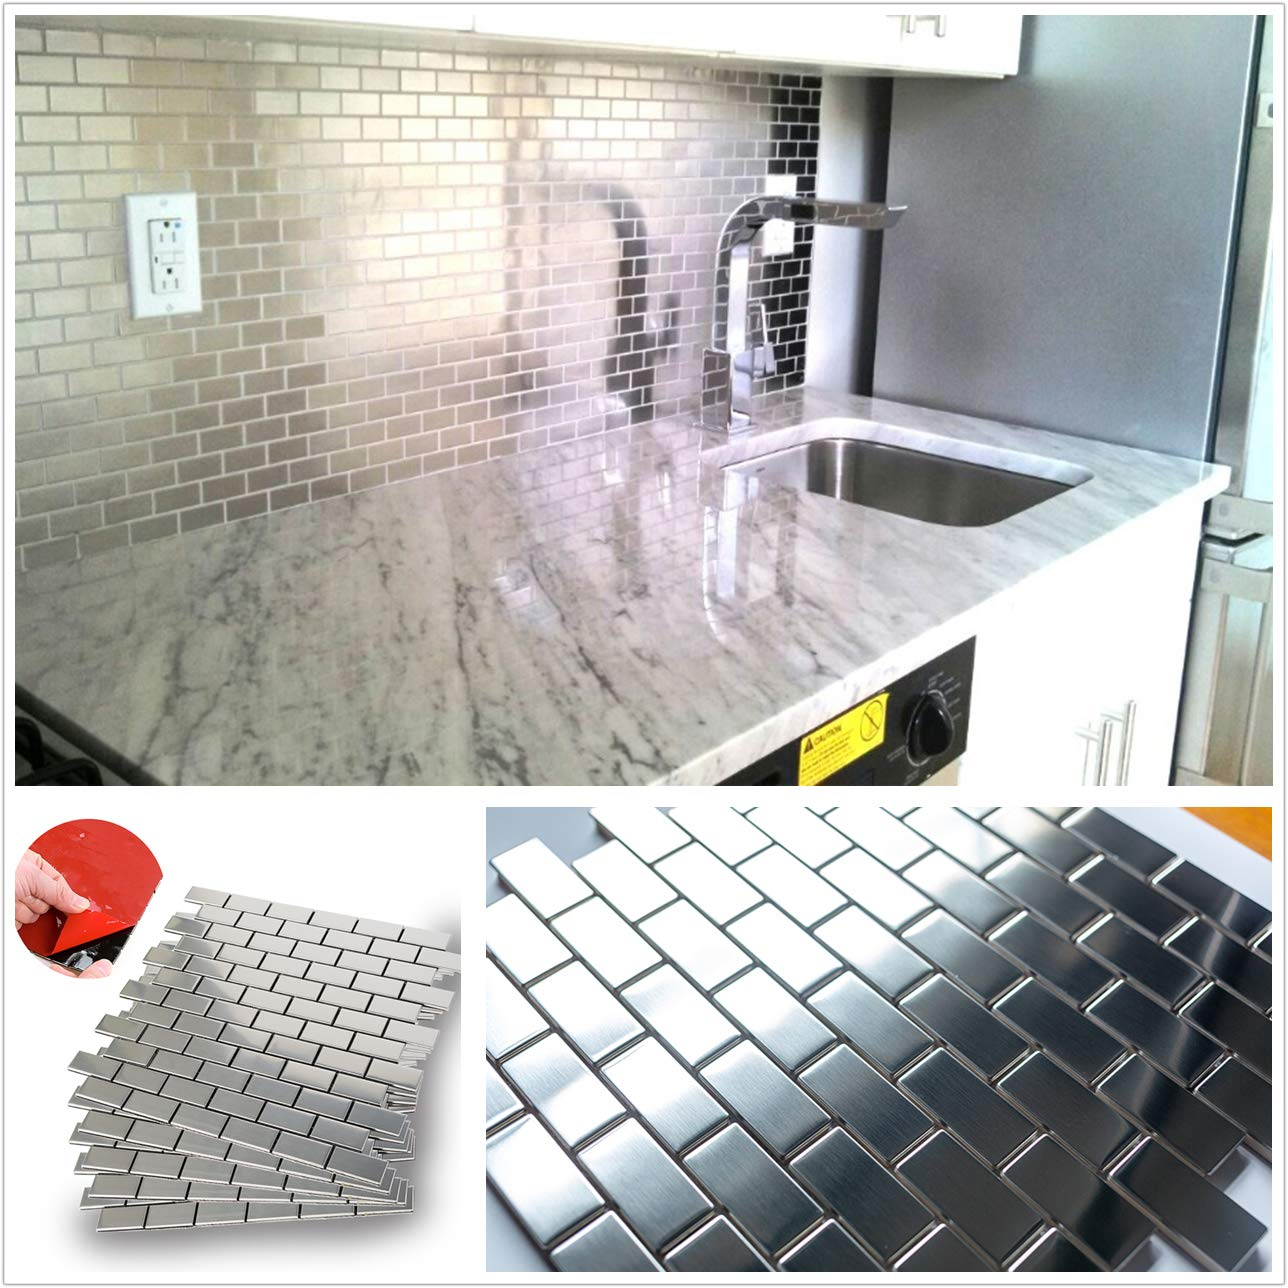 HomeyStyle Subway Stainless Steel Peel and Stick Tile Backsplash for Kitchen Bathroom Stove Self-Adhesive Metal Mosaic Tiles Wall Decor Sticker,5 Tiles x 12''x12''